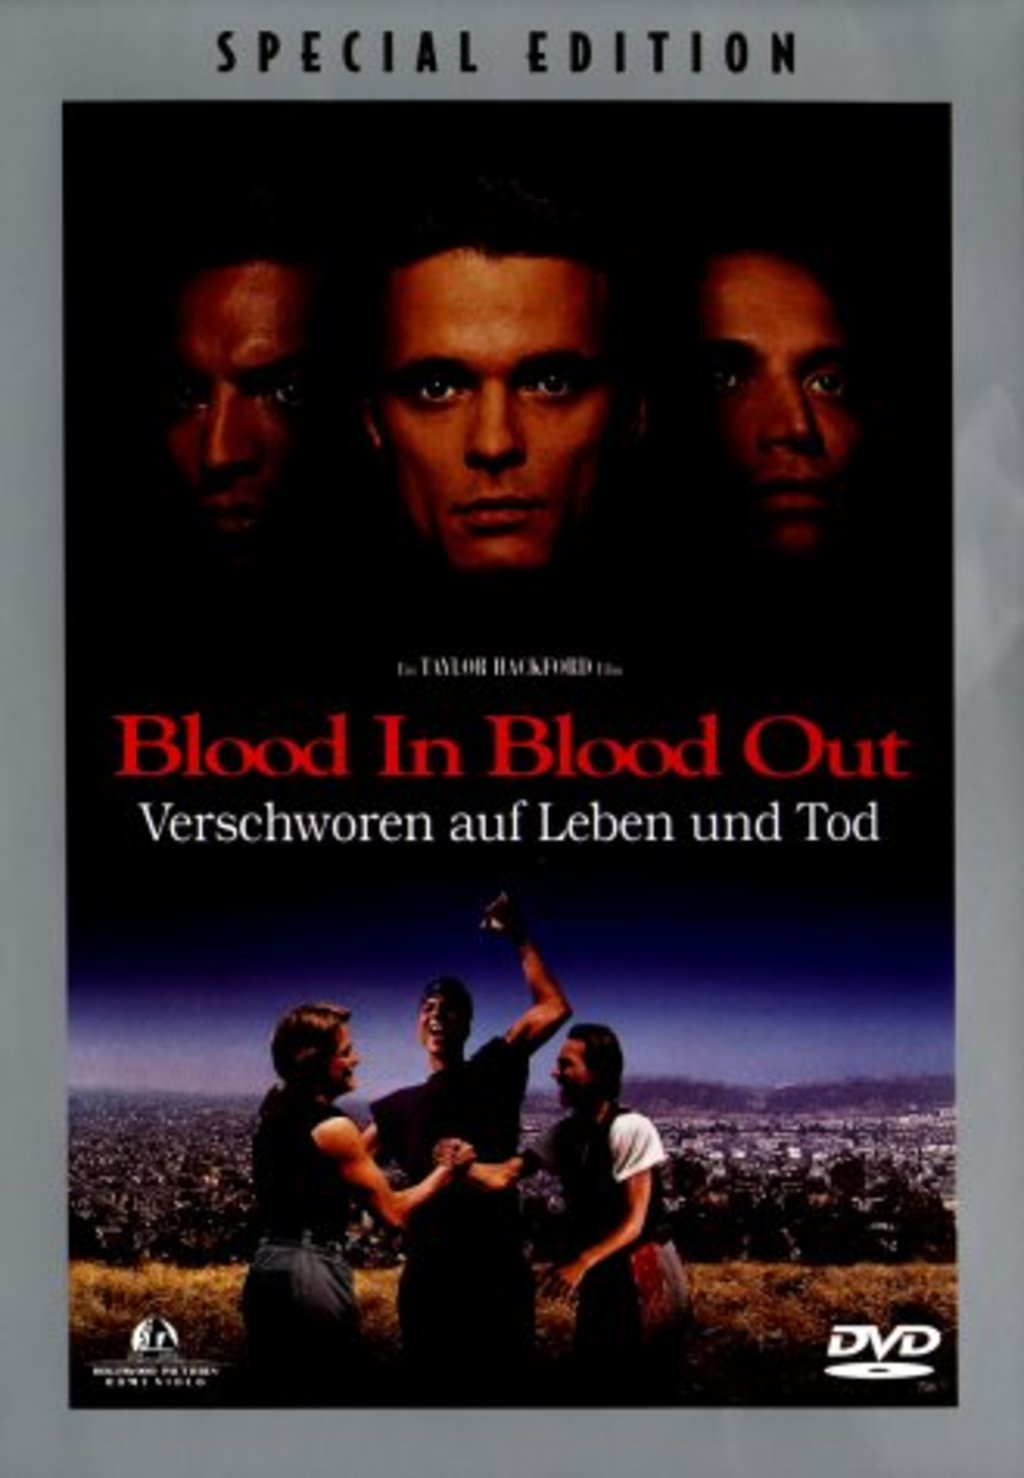 blood in blood out 720p download